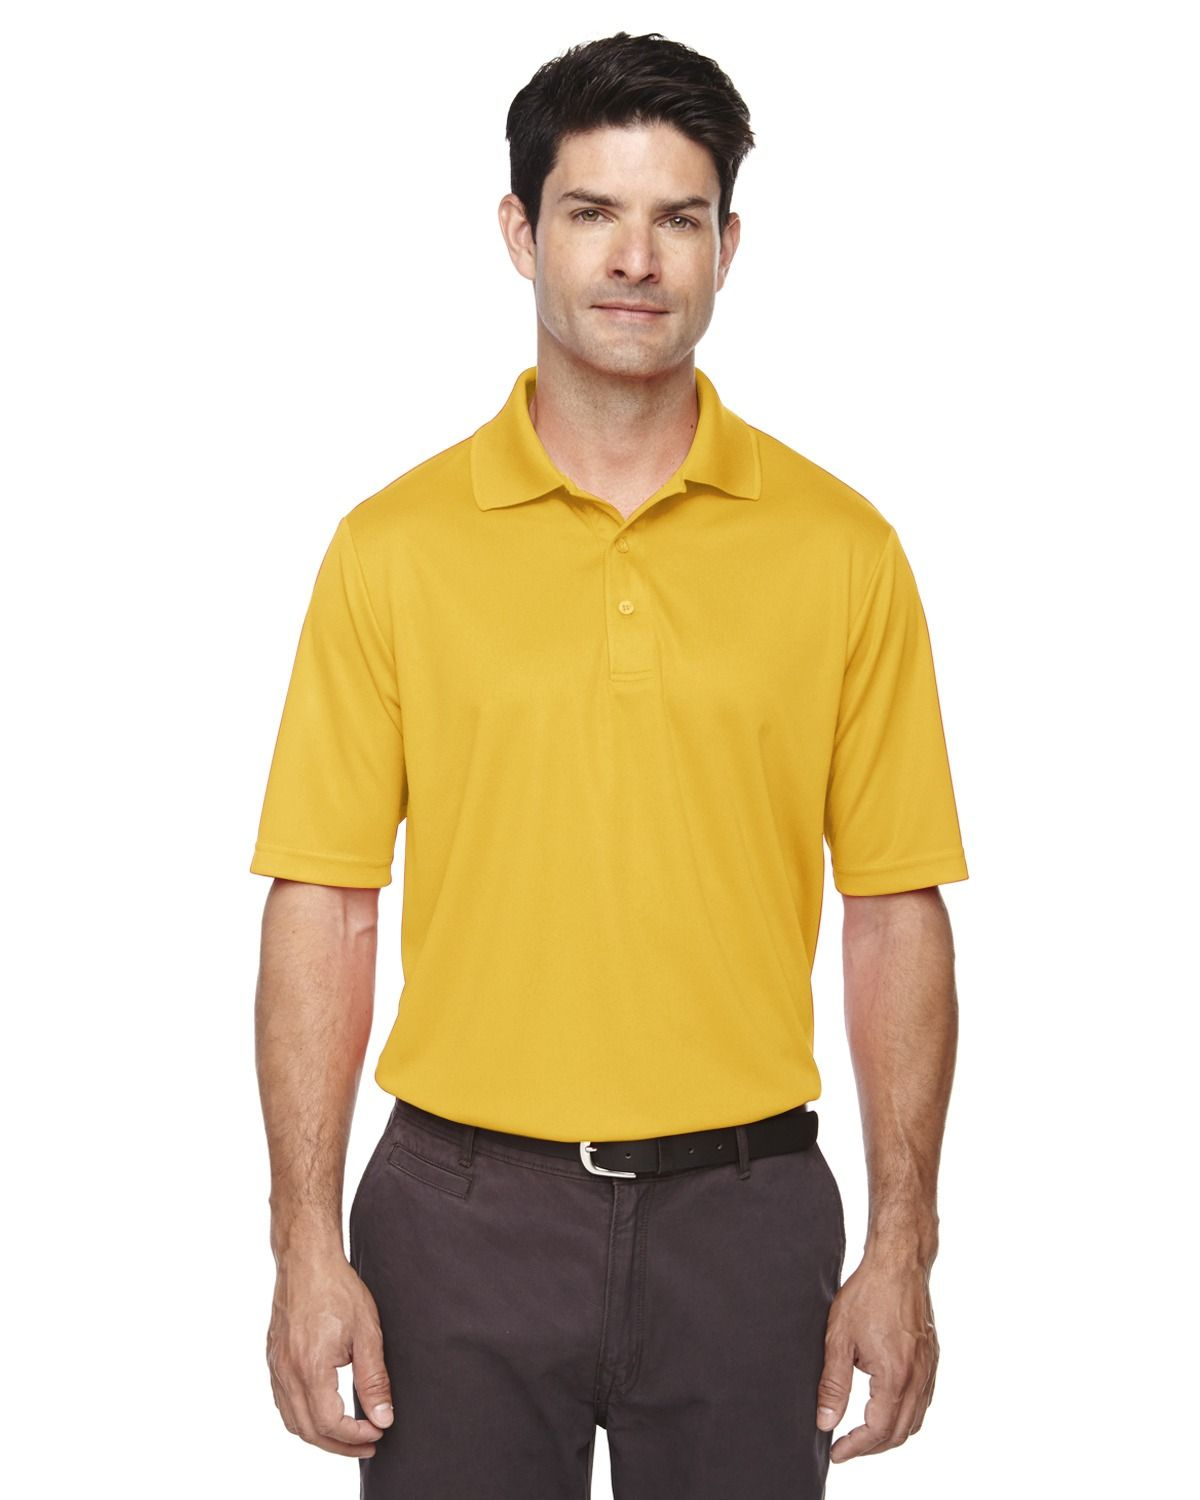 b6c6a16c Business Logo Shirts personalized and embroidered with your promotional  imprint or logo. Several colors and